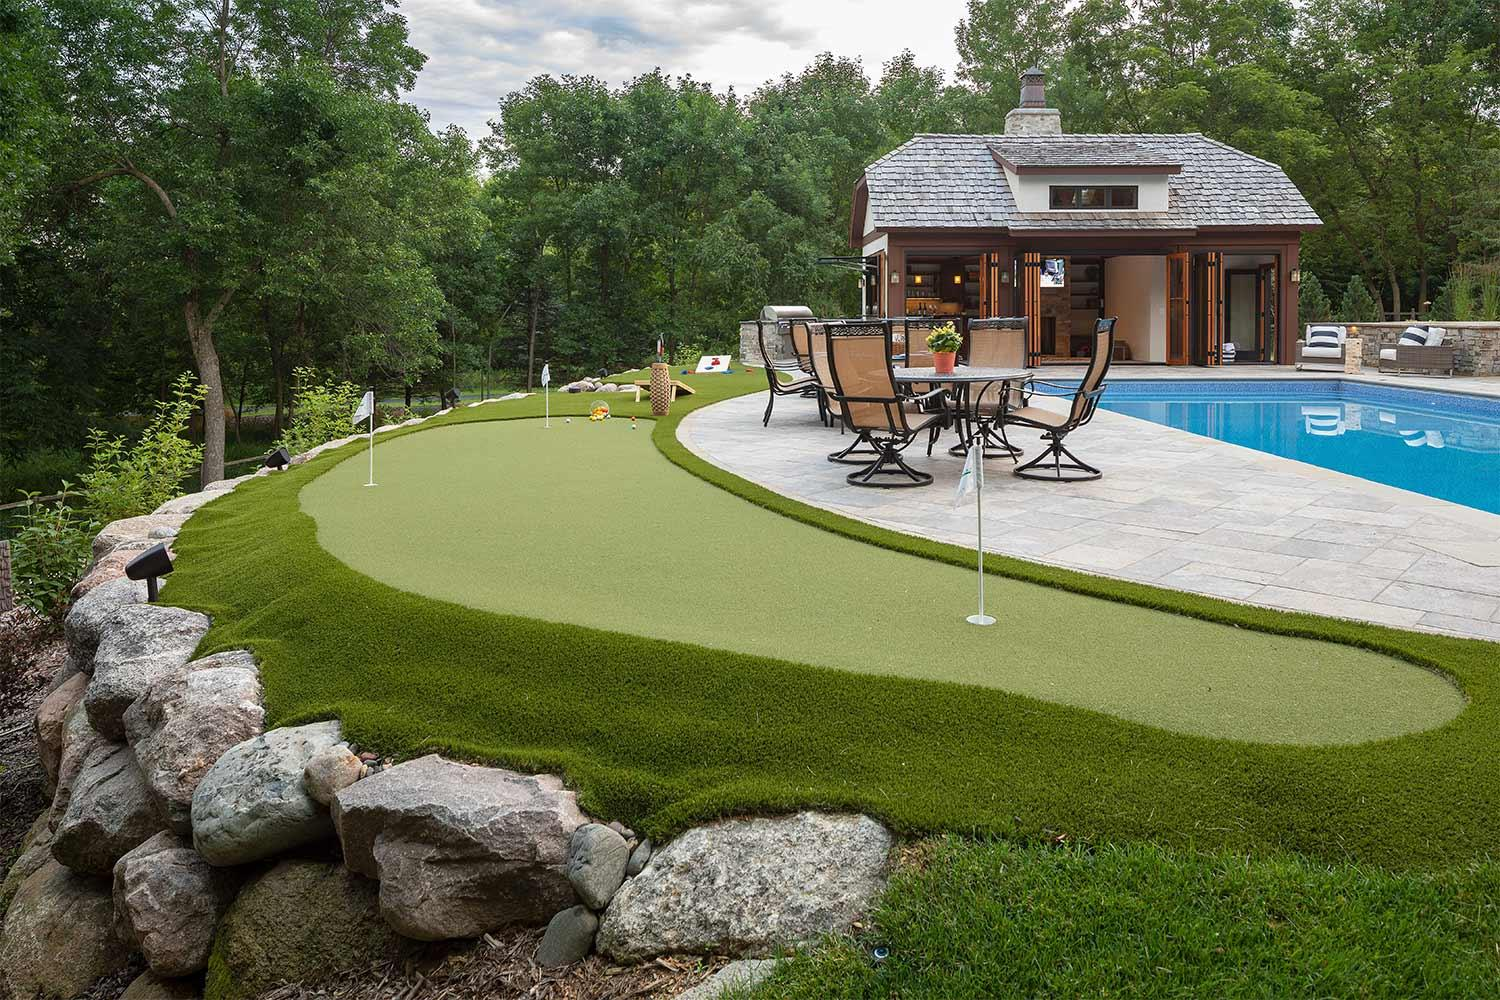 Backyard Basketball Courts Putting Greens And Games In Minneapolis St Paul Southview Design Minneapolis St Paul